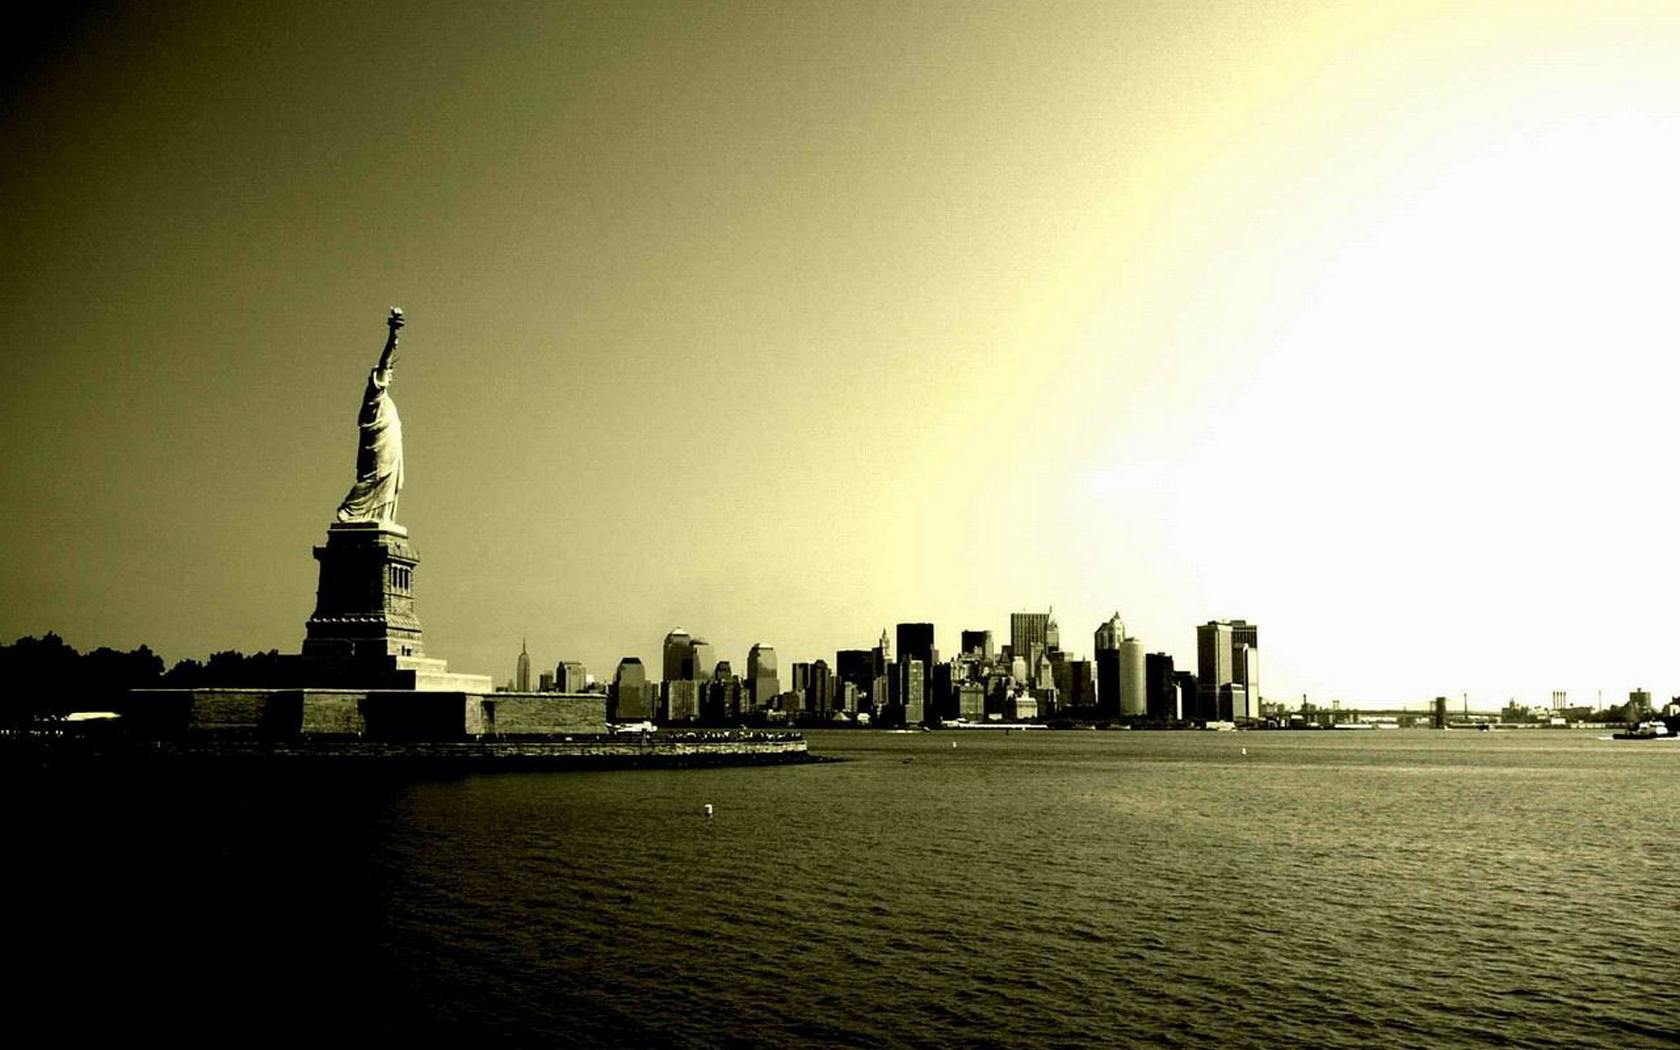 4k statue of liberty wallpapers high quality | download free